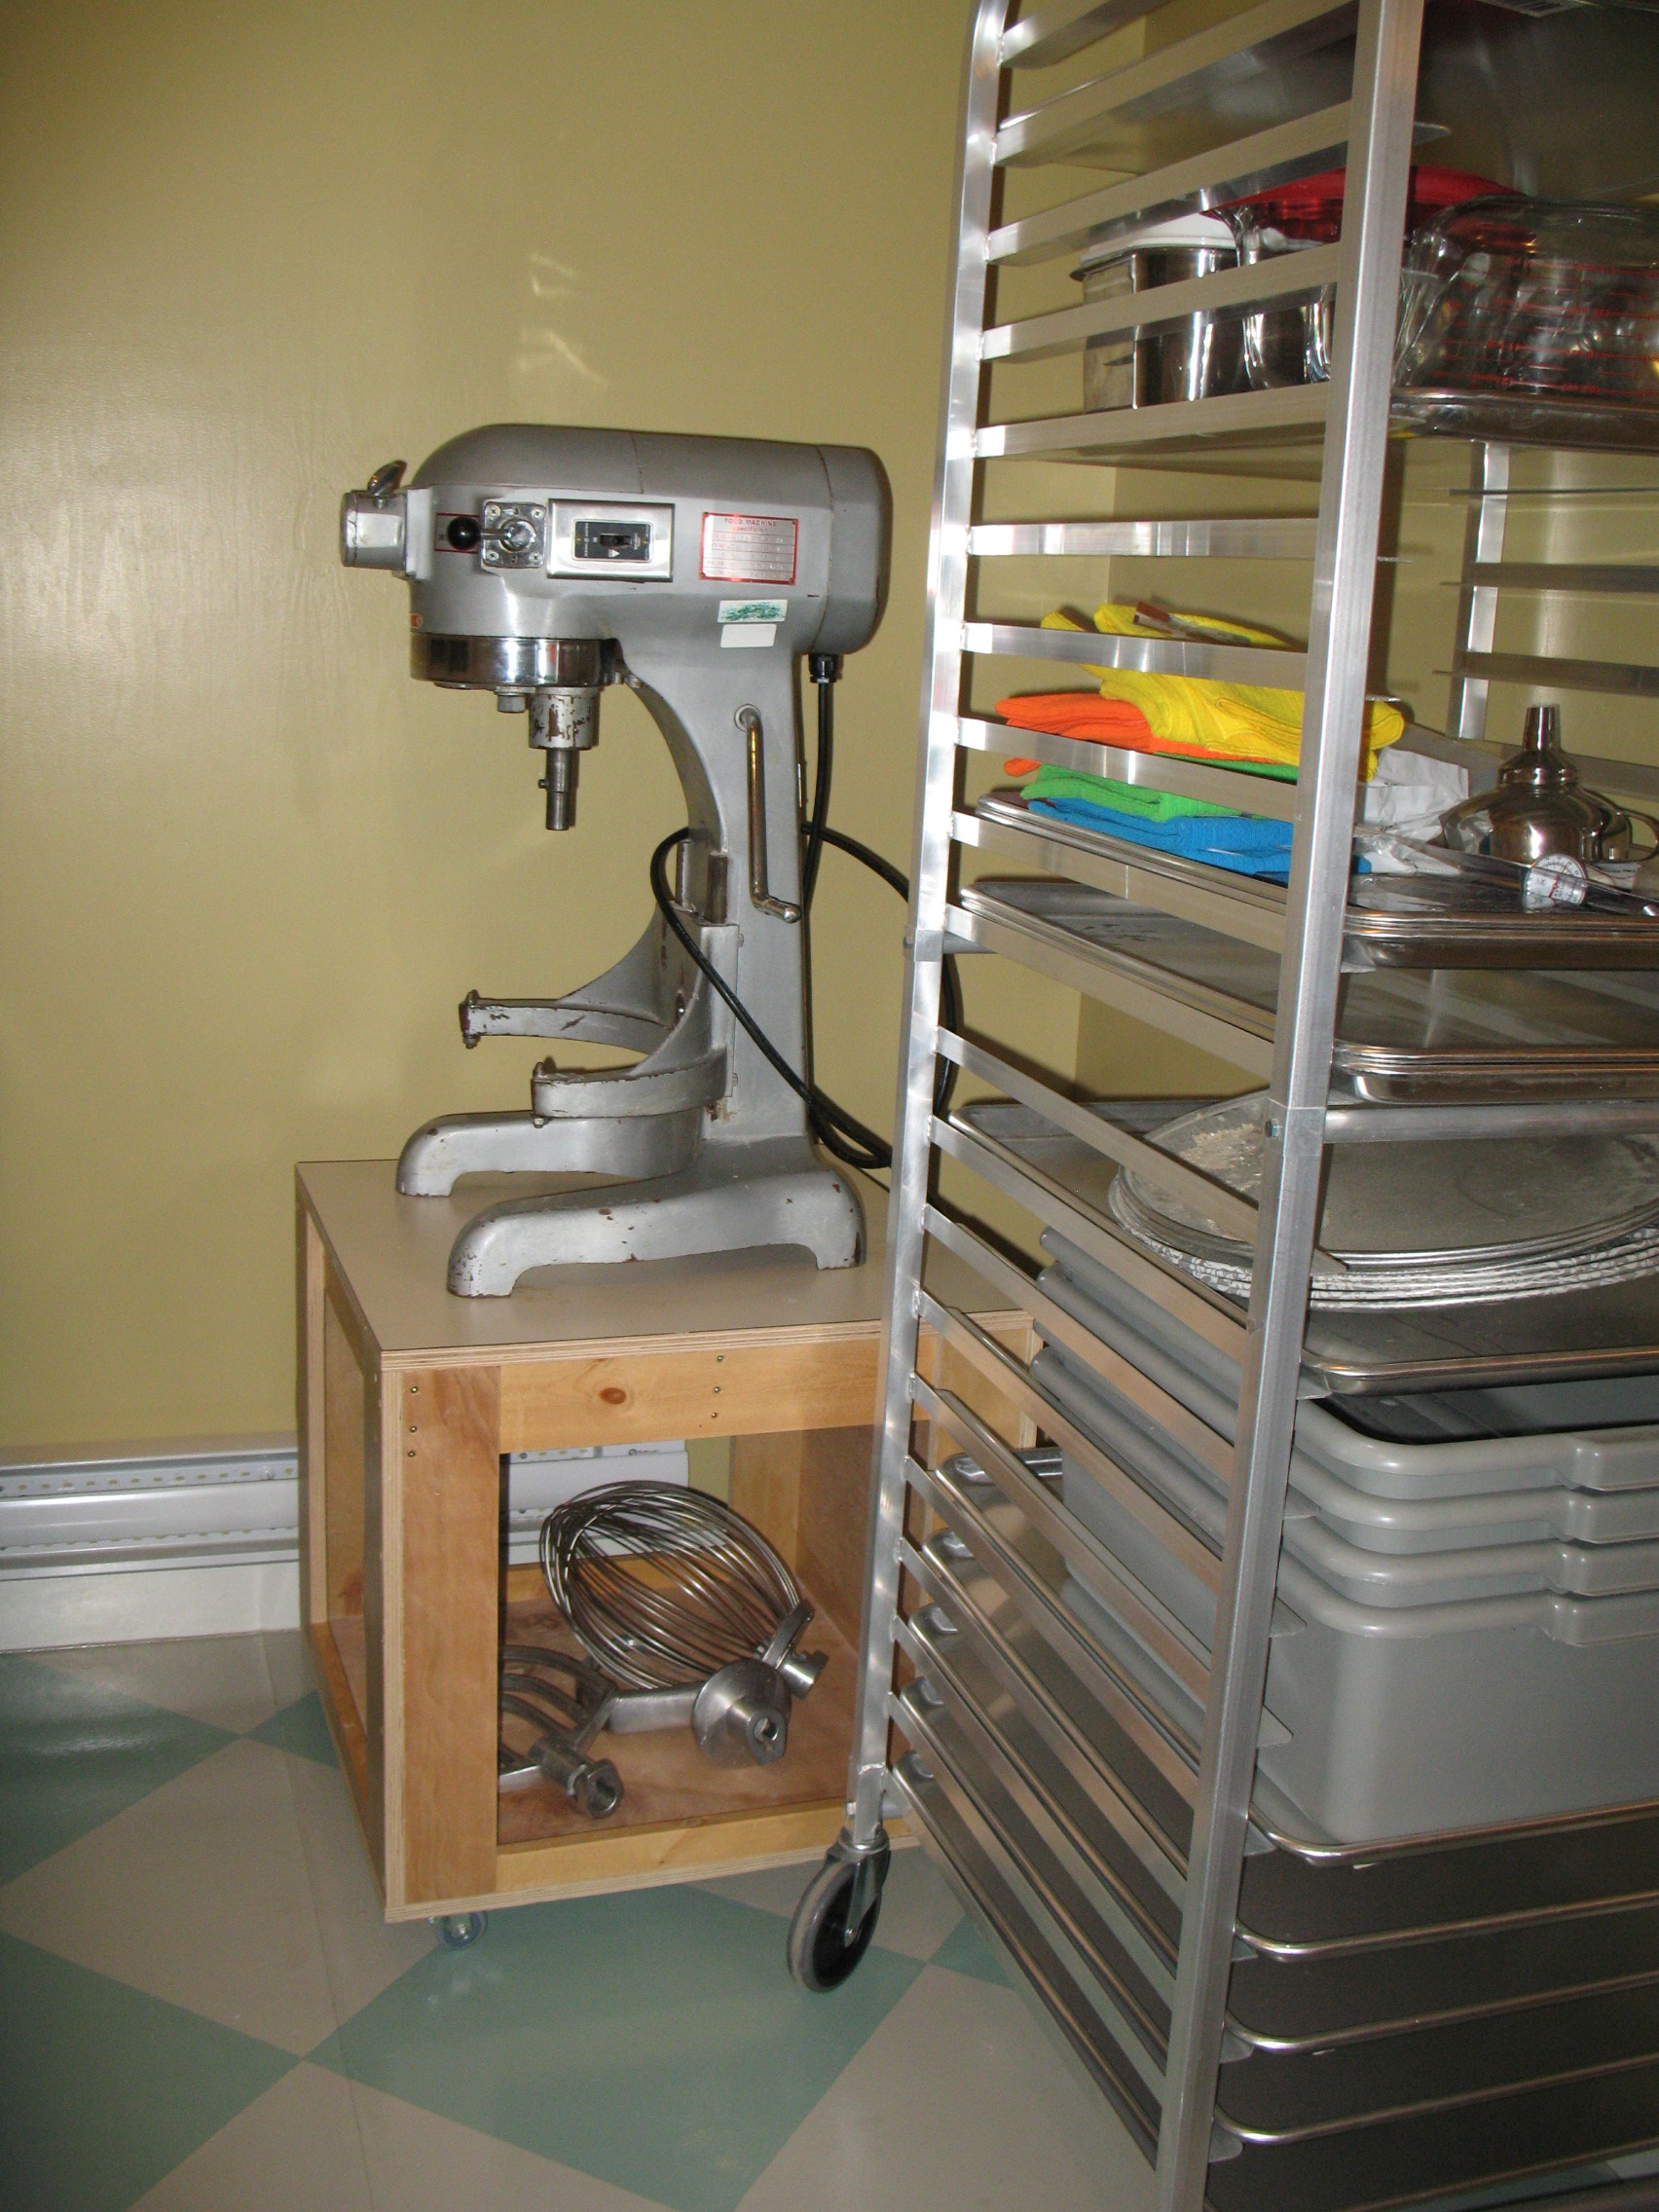 The mixer and the proofing racks in the dough room.